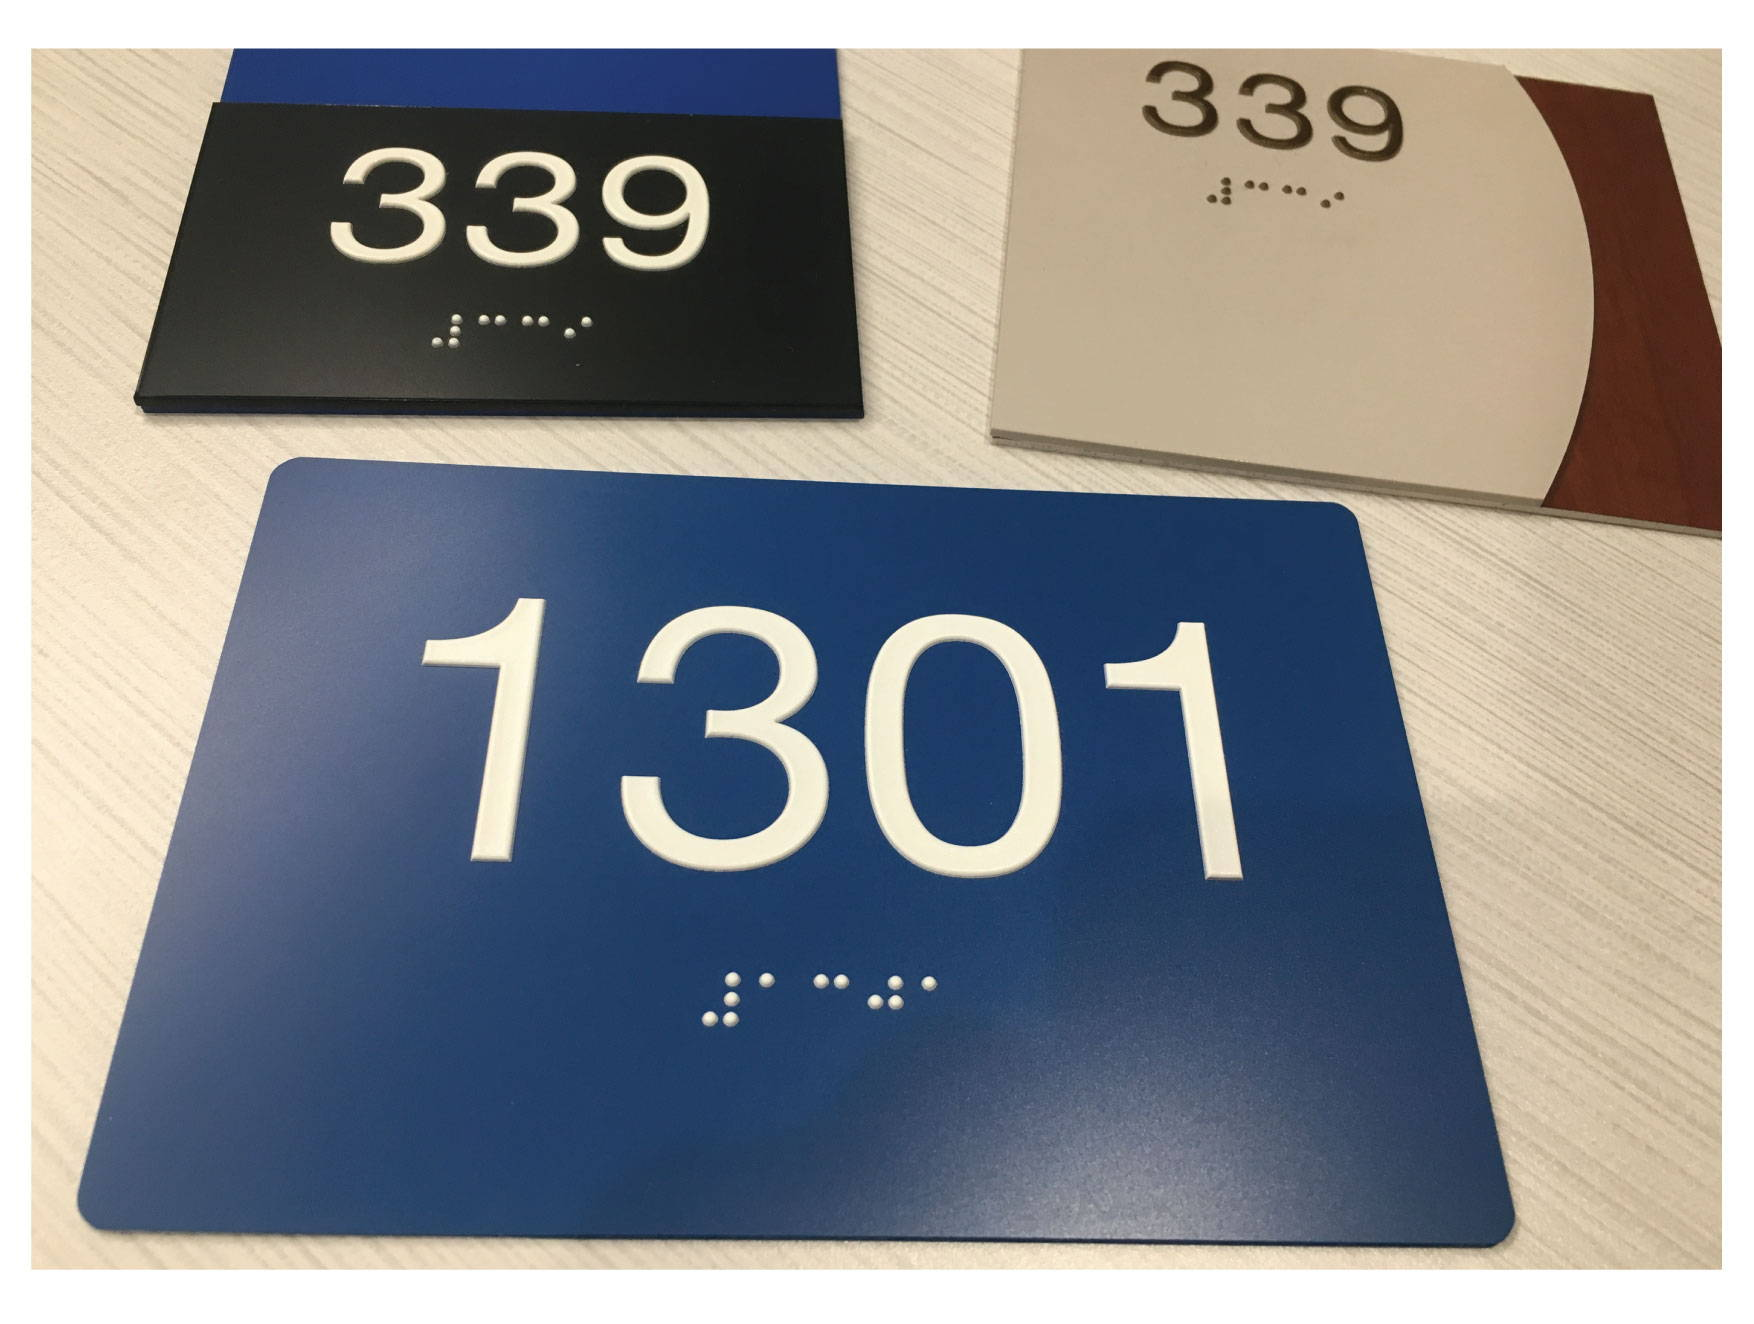 ADA Custom Room Number ADA Signs with Grade II Braille, Compliant ADA Signs